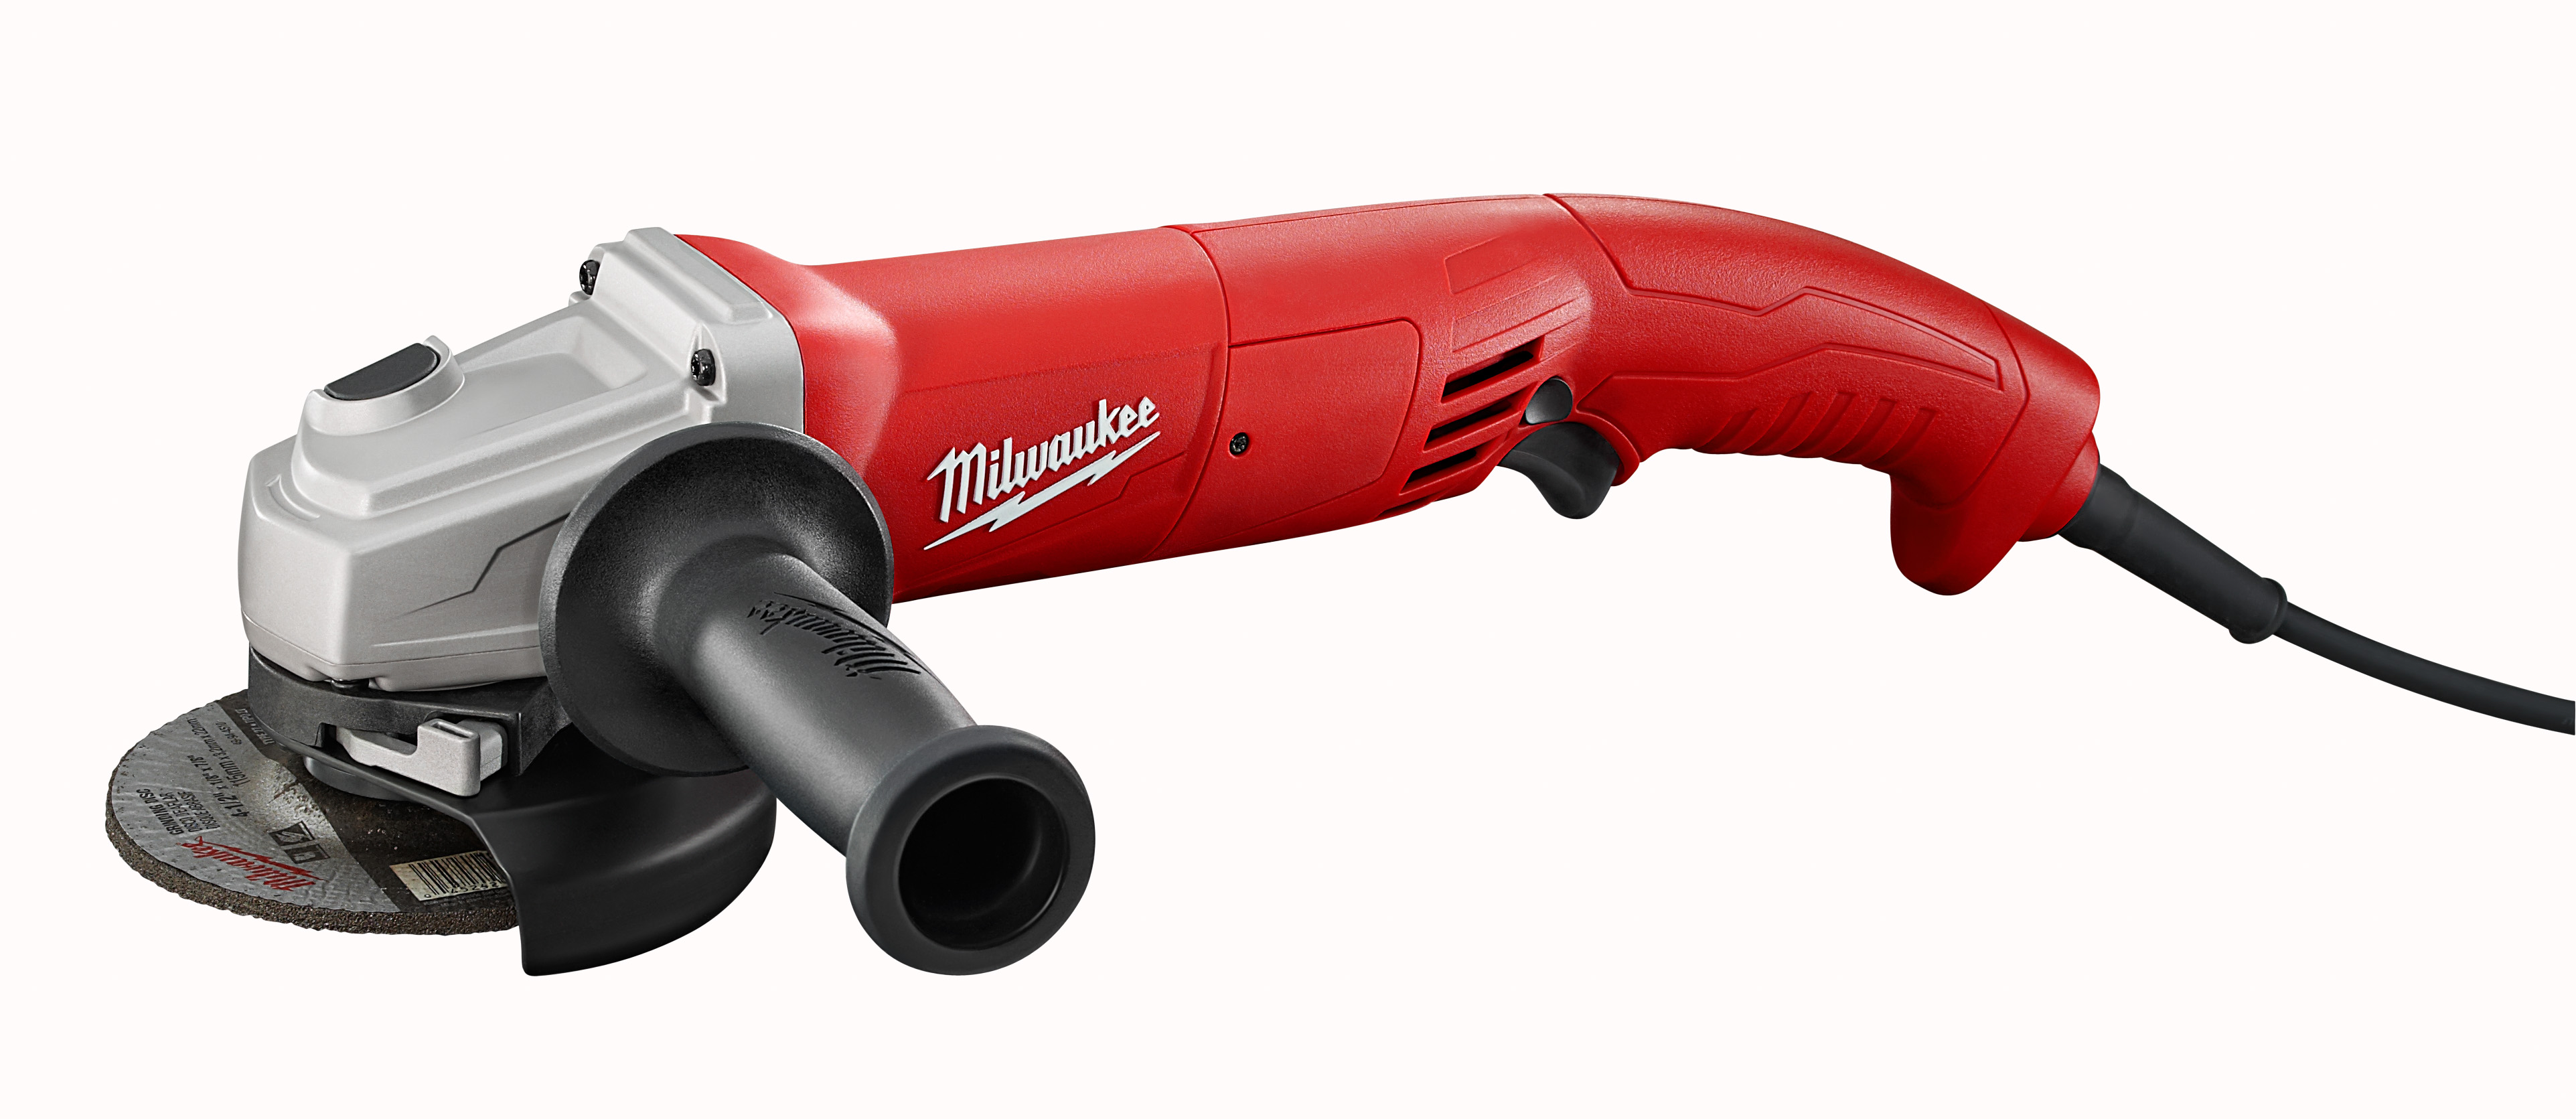 "Milwaukee 6121-30 11 Amp 4-1/2"" Small Angle Grinder Trigger Grip, Lock-On"